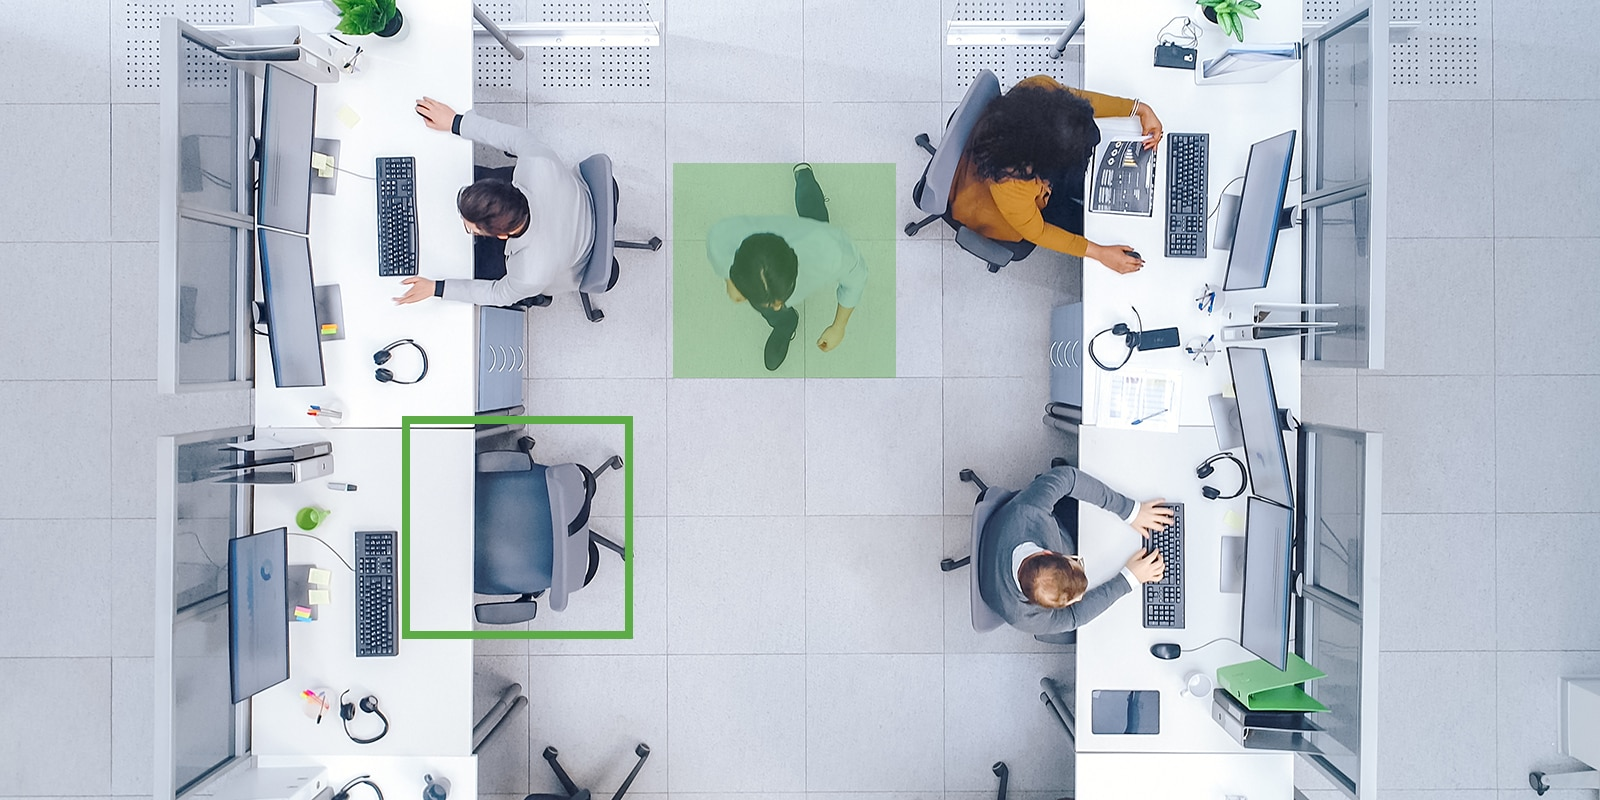 Overhead view of workers in an office